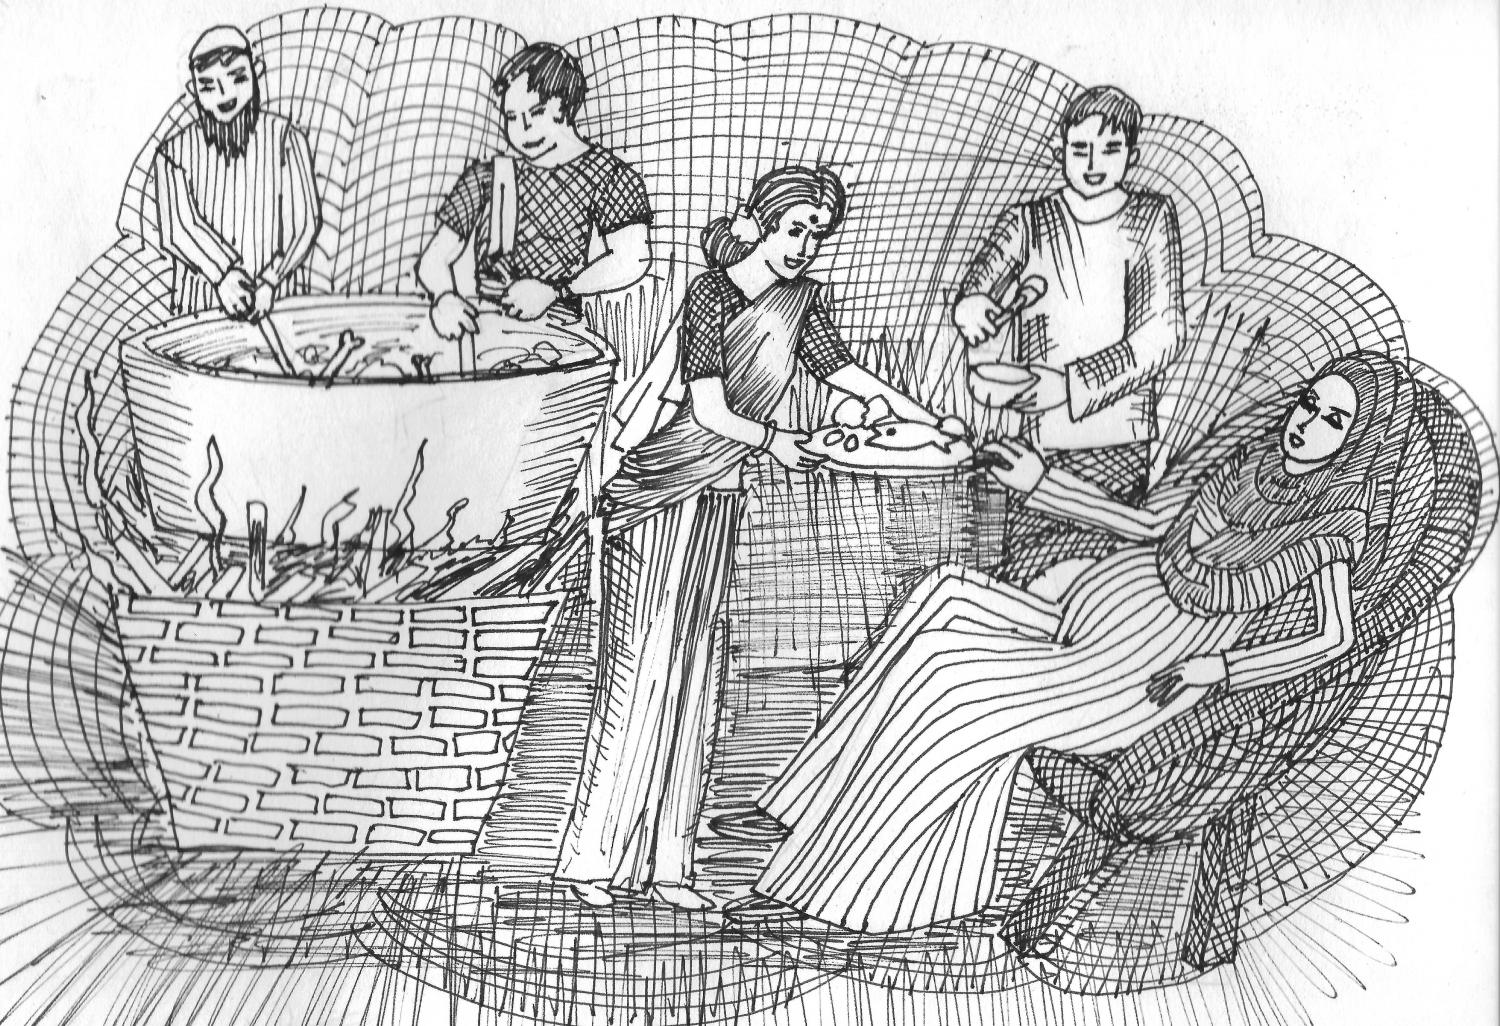 Drawing of various people cooking and serving food including meat and fish